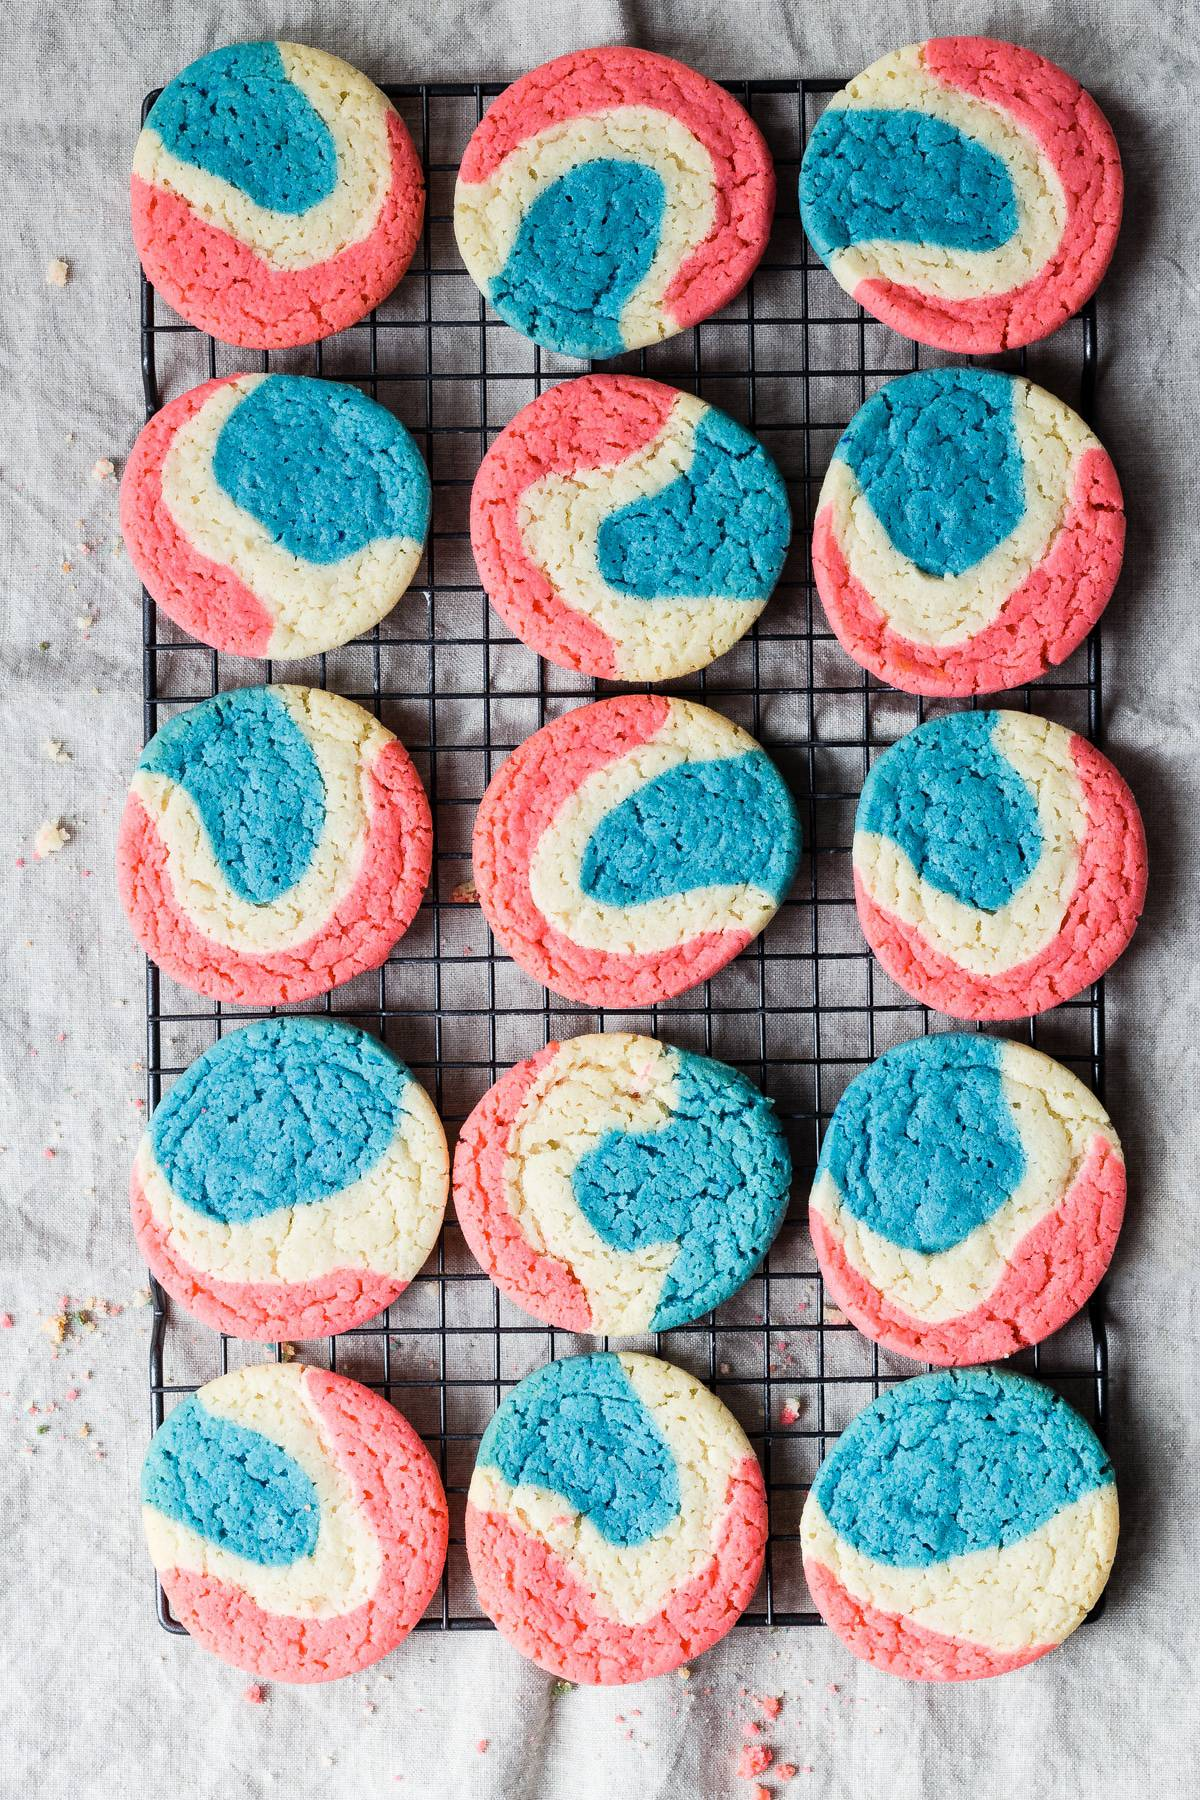 Red white and blue sugar cookies